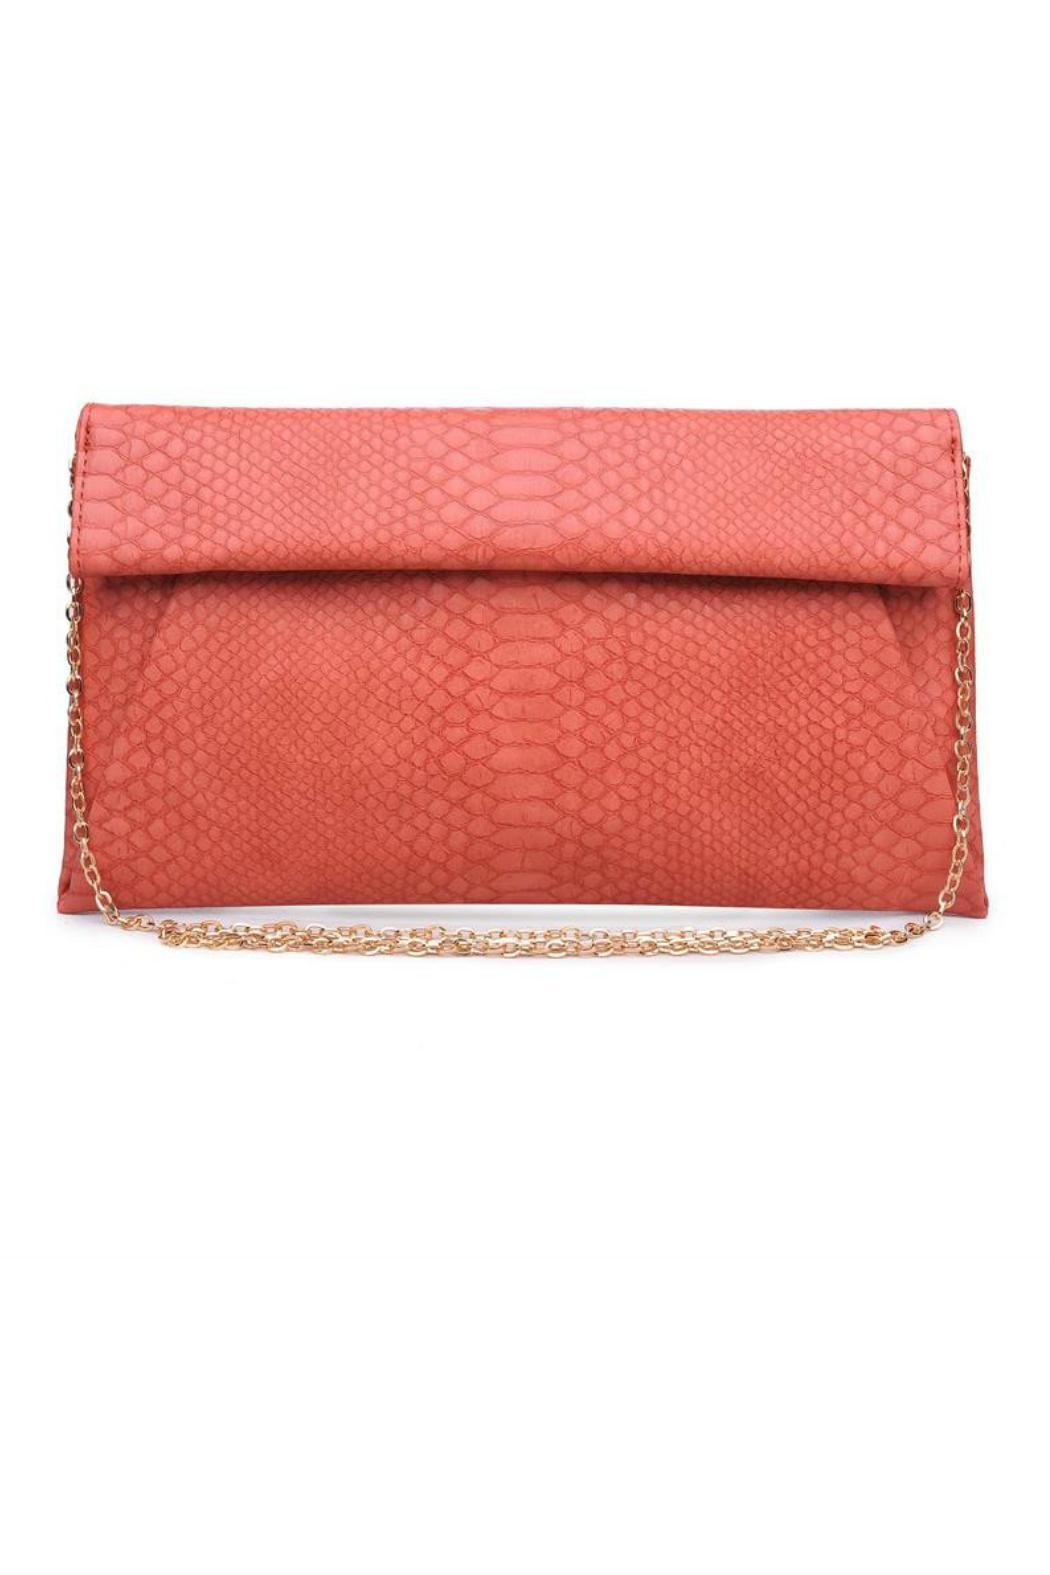 Urban Expressions Emilia Clutch - Front Cropped Image